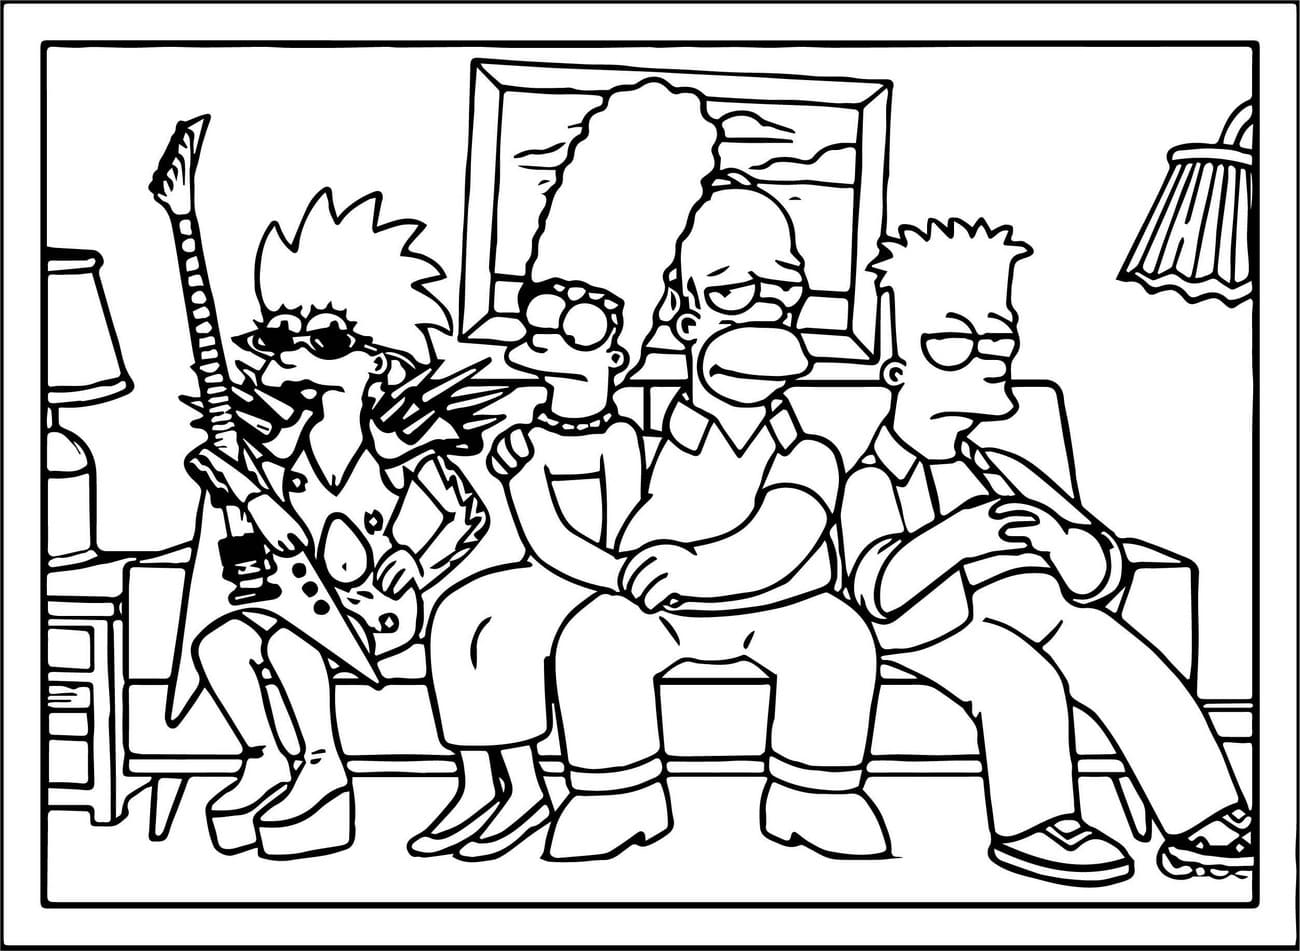 coloring simpsons simpson coloring pages to download and print for free simpsons coloring 1 1